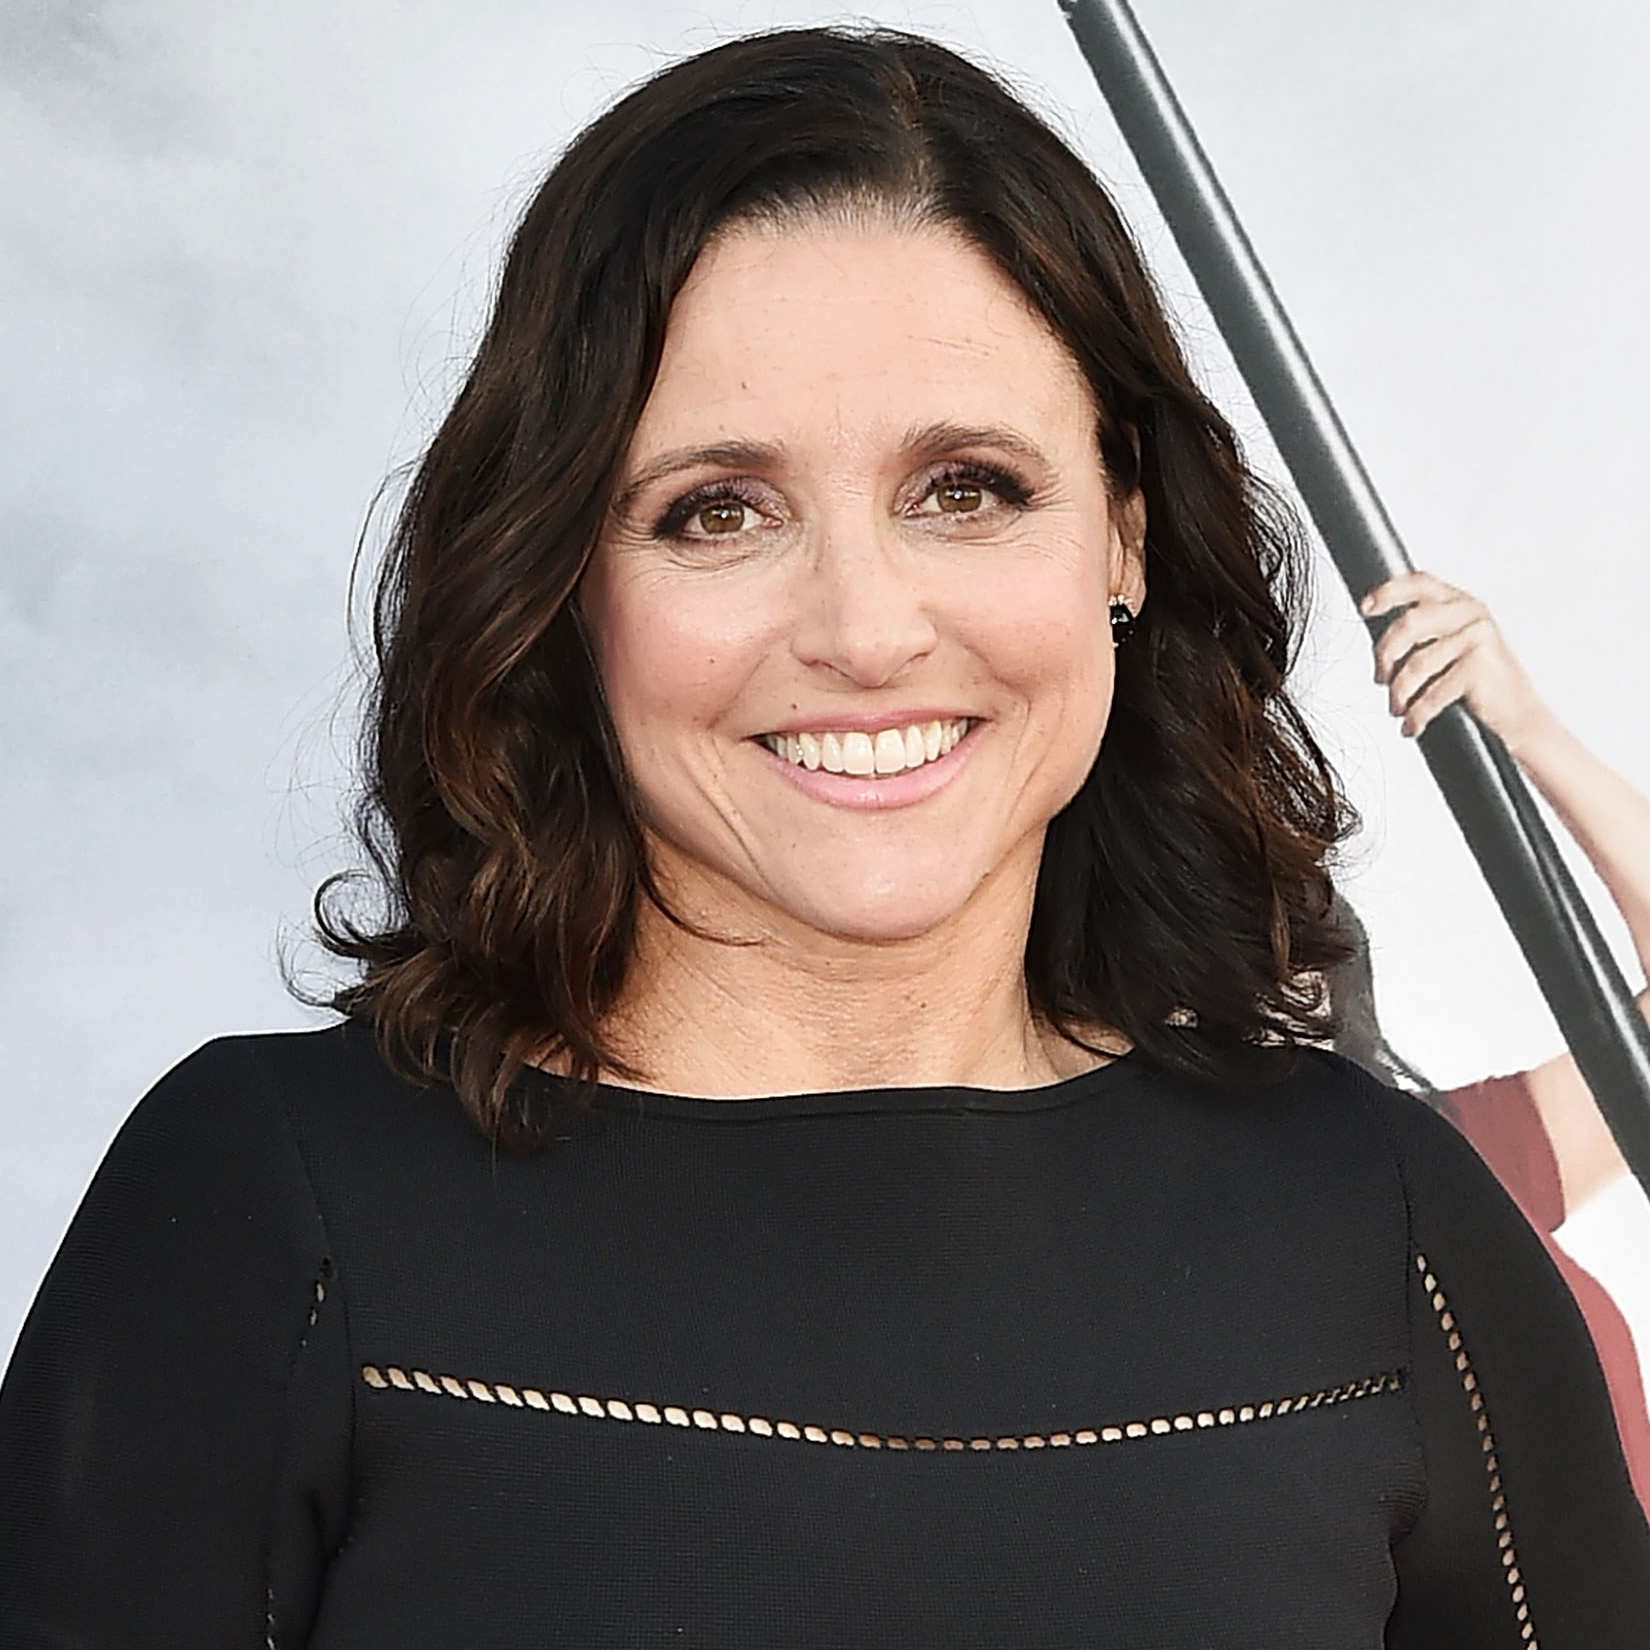 Celebs Who Revealed Health Issues in 2017 - Julia Louis-Dreyfus